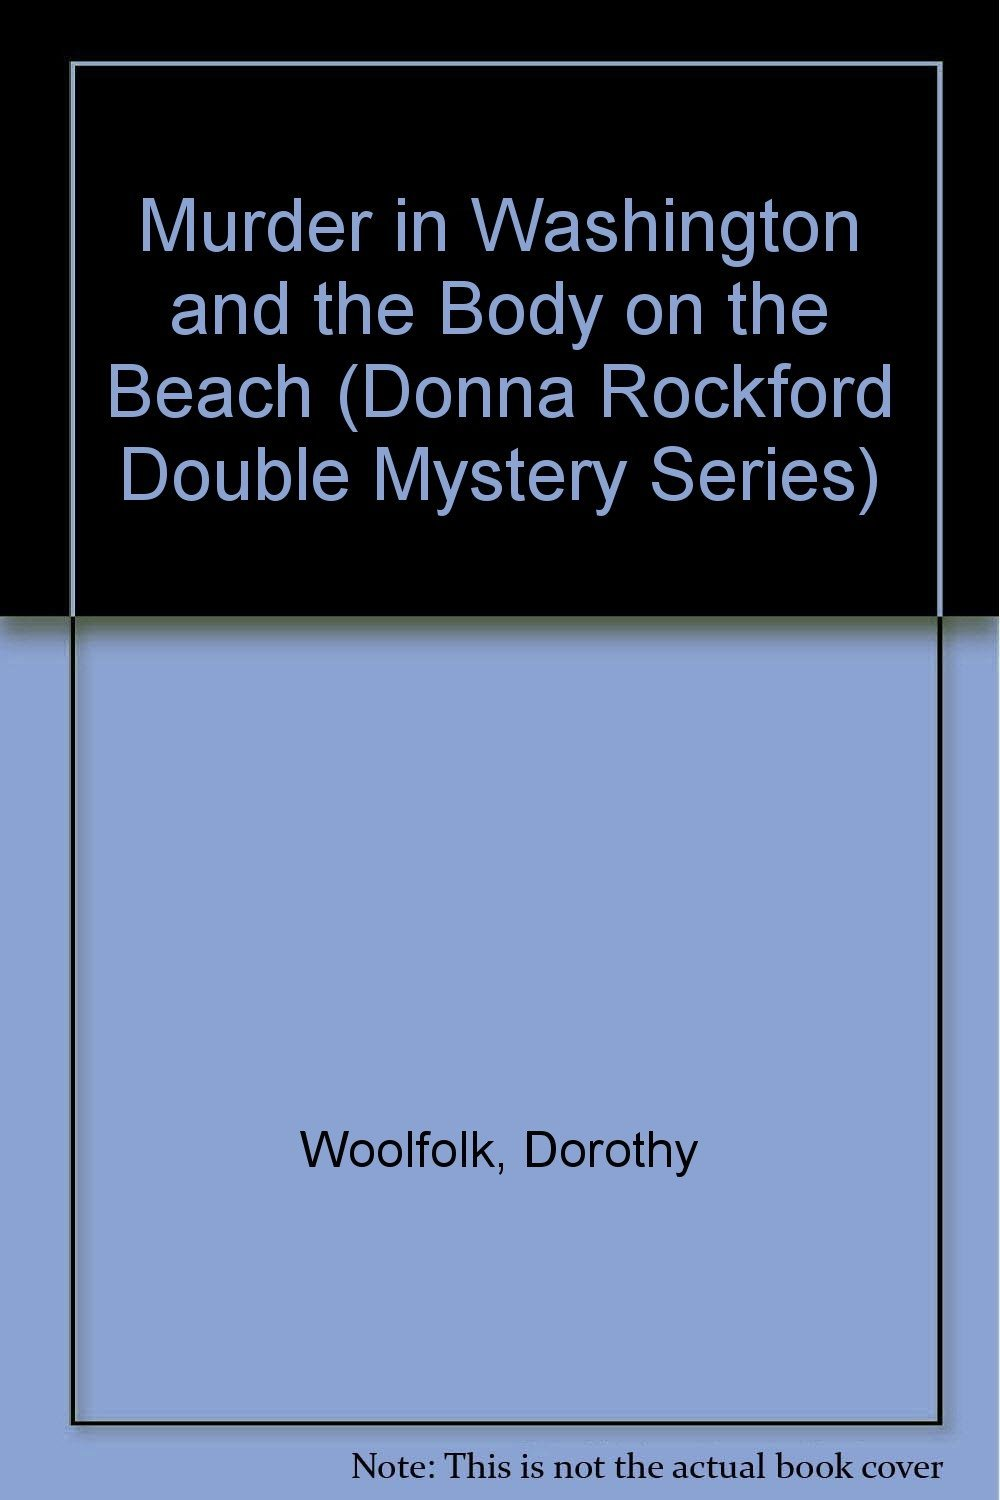 a review of dorothy woolfolks donna rockford mystery books Public lab books to borrow featured movies all video latest this just in prelinger archives democracy now full text of variety (march 1916) see other formats.